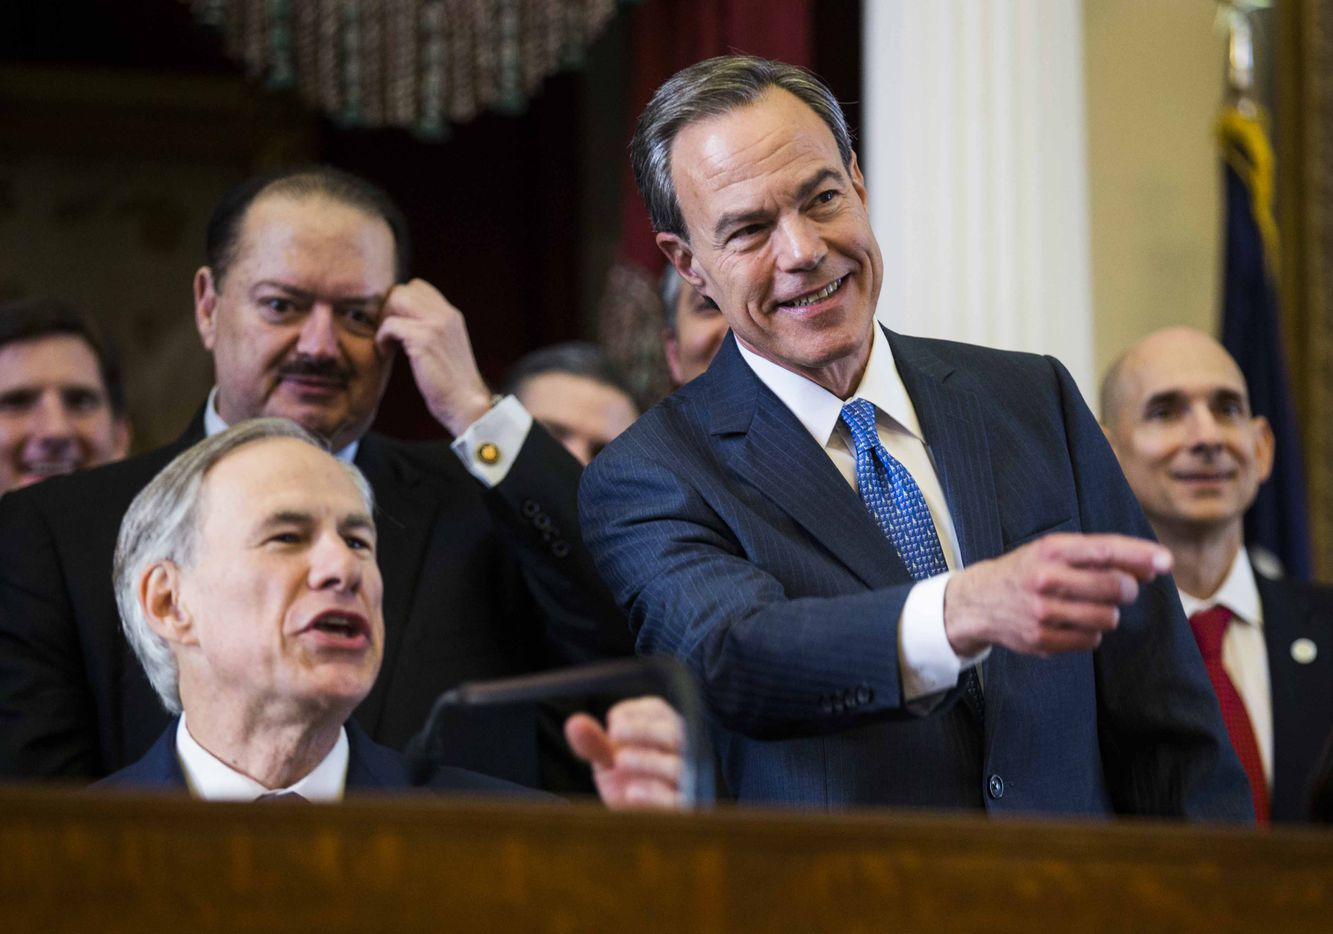 Texas Gov. Greg Abbott and Speaker of the House Joe Straus point to a representative from the podium during the first day of the 85th Texas Legislative Session on Tuesday at the Texas State Capitol in Austin.